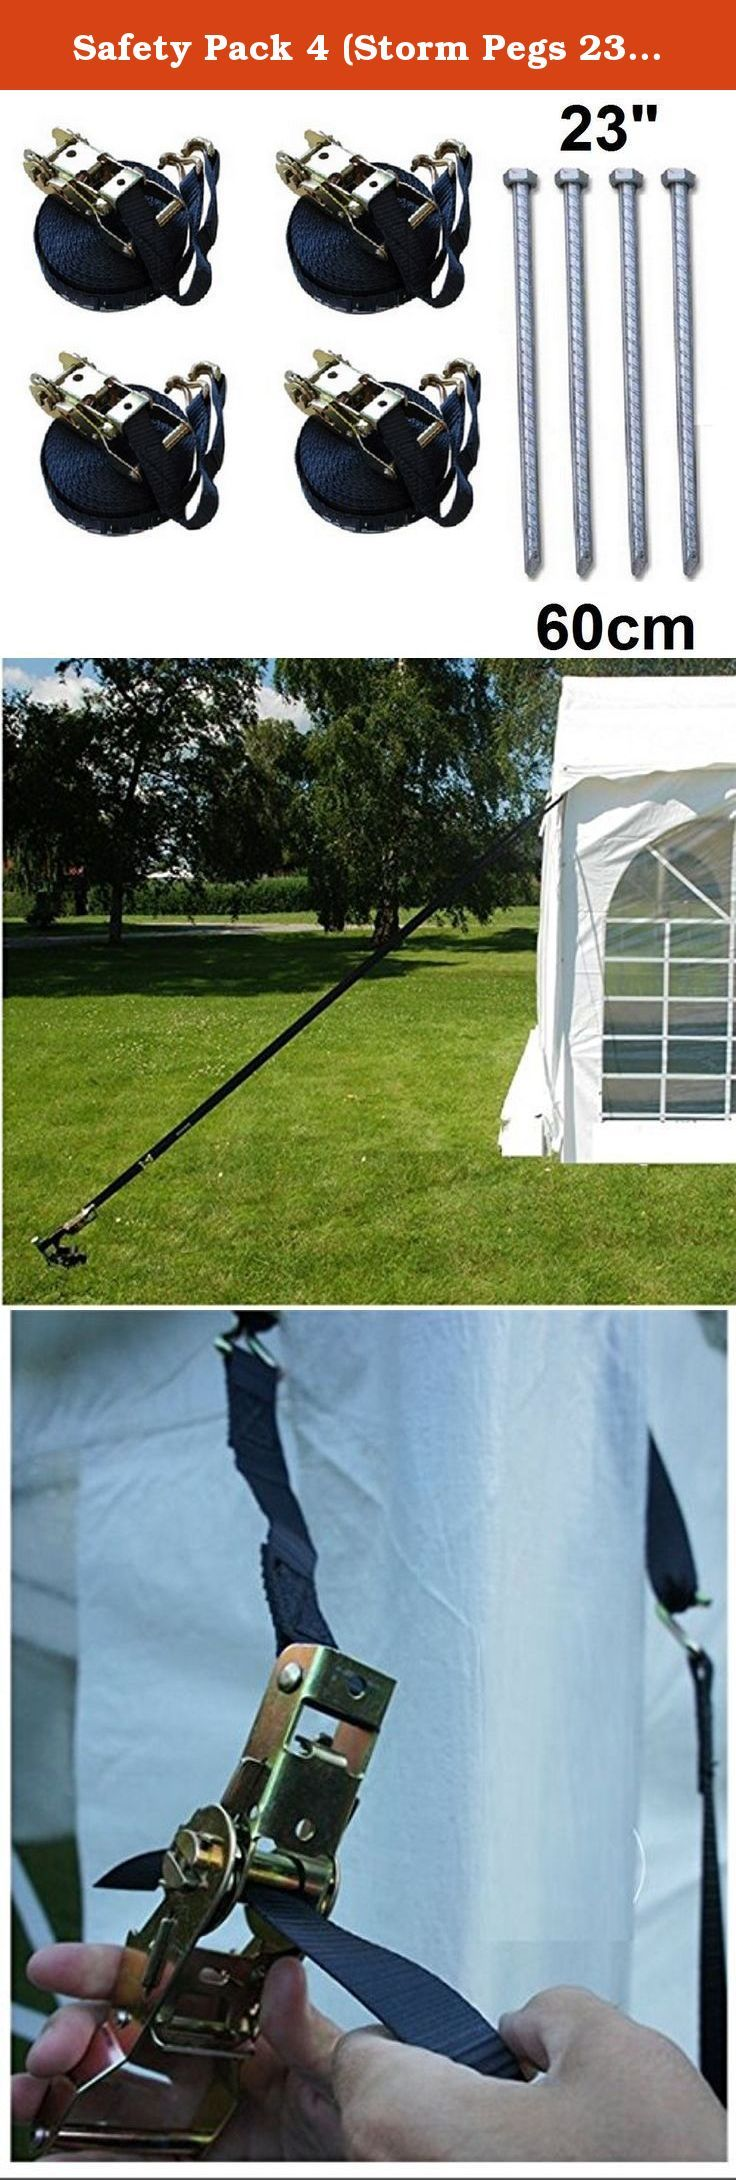 Safety Pack 4 (Storm Pegs 23  u0026 Storm Straps) for Party Tent Gazebo : tent straps - memphite.com